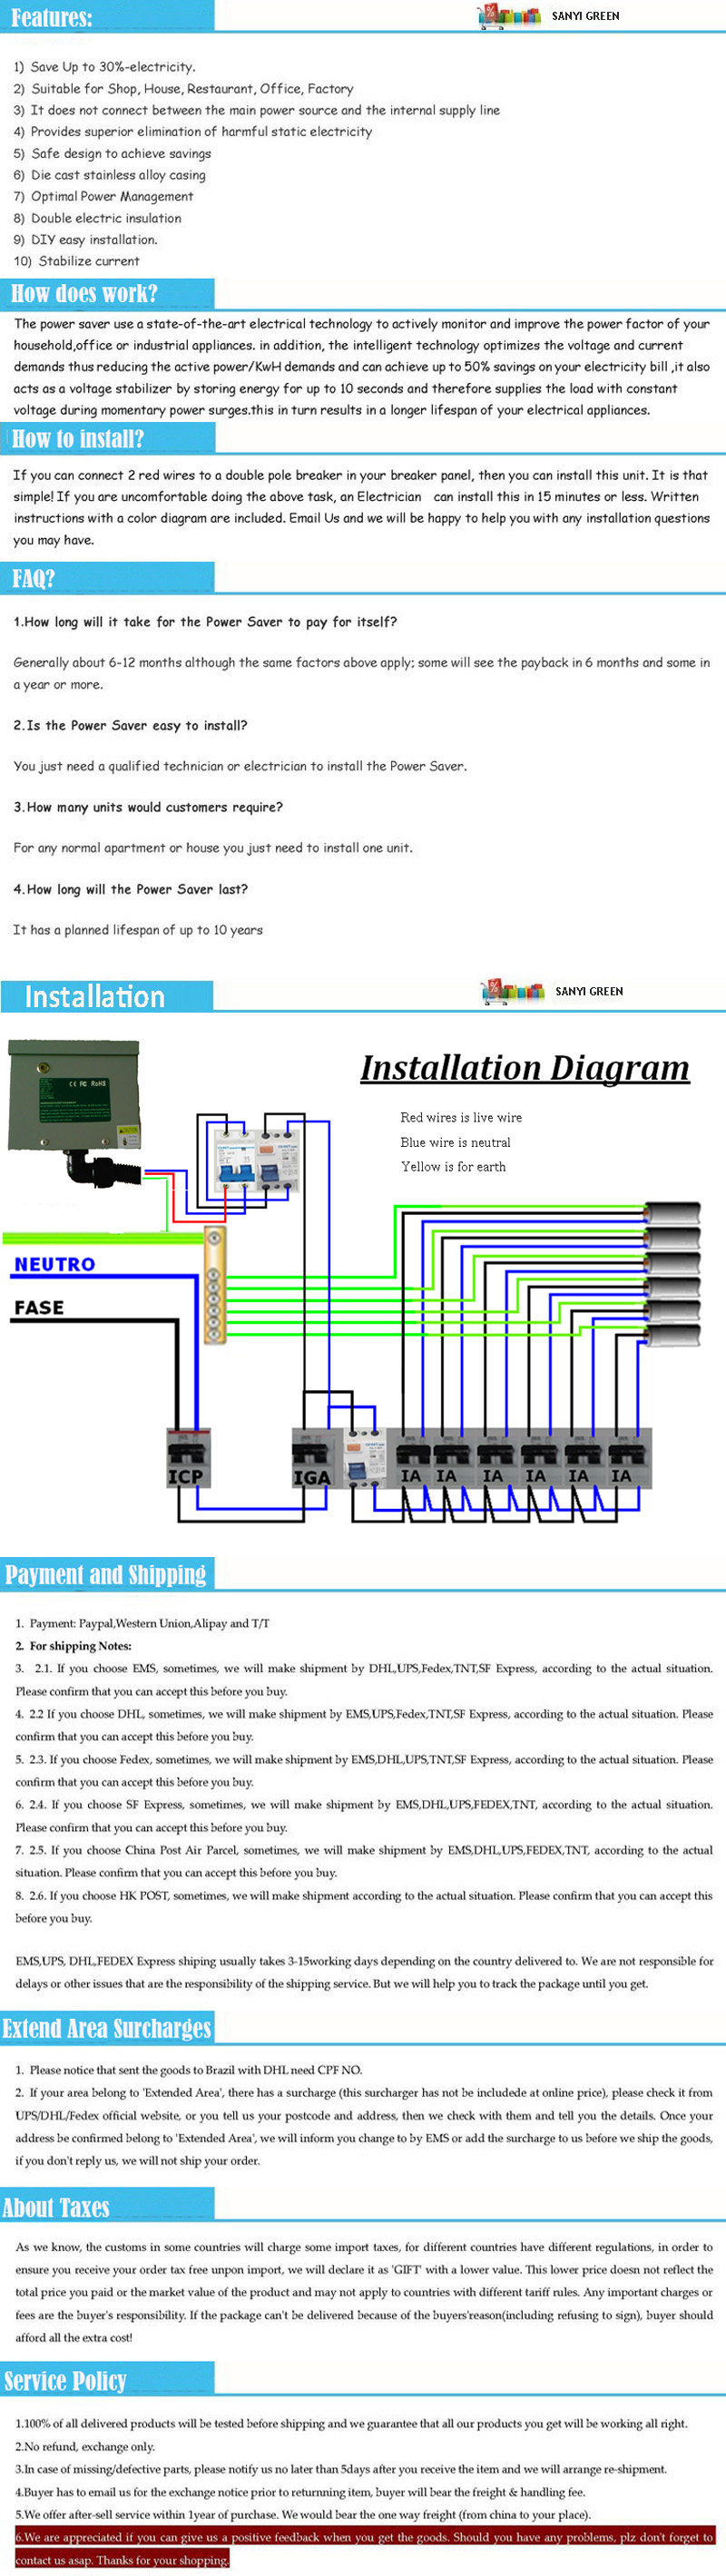 Sanyi Amandla 50kw Power Saver Single Phase For Home And Office Circuit Diagram Can Be Used All Day Every Continuously Under Any Climate